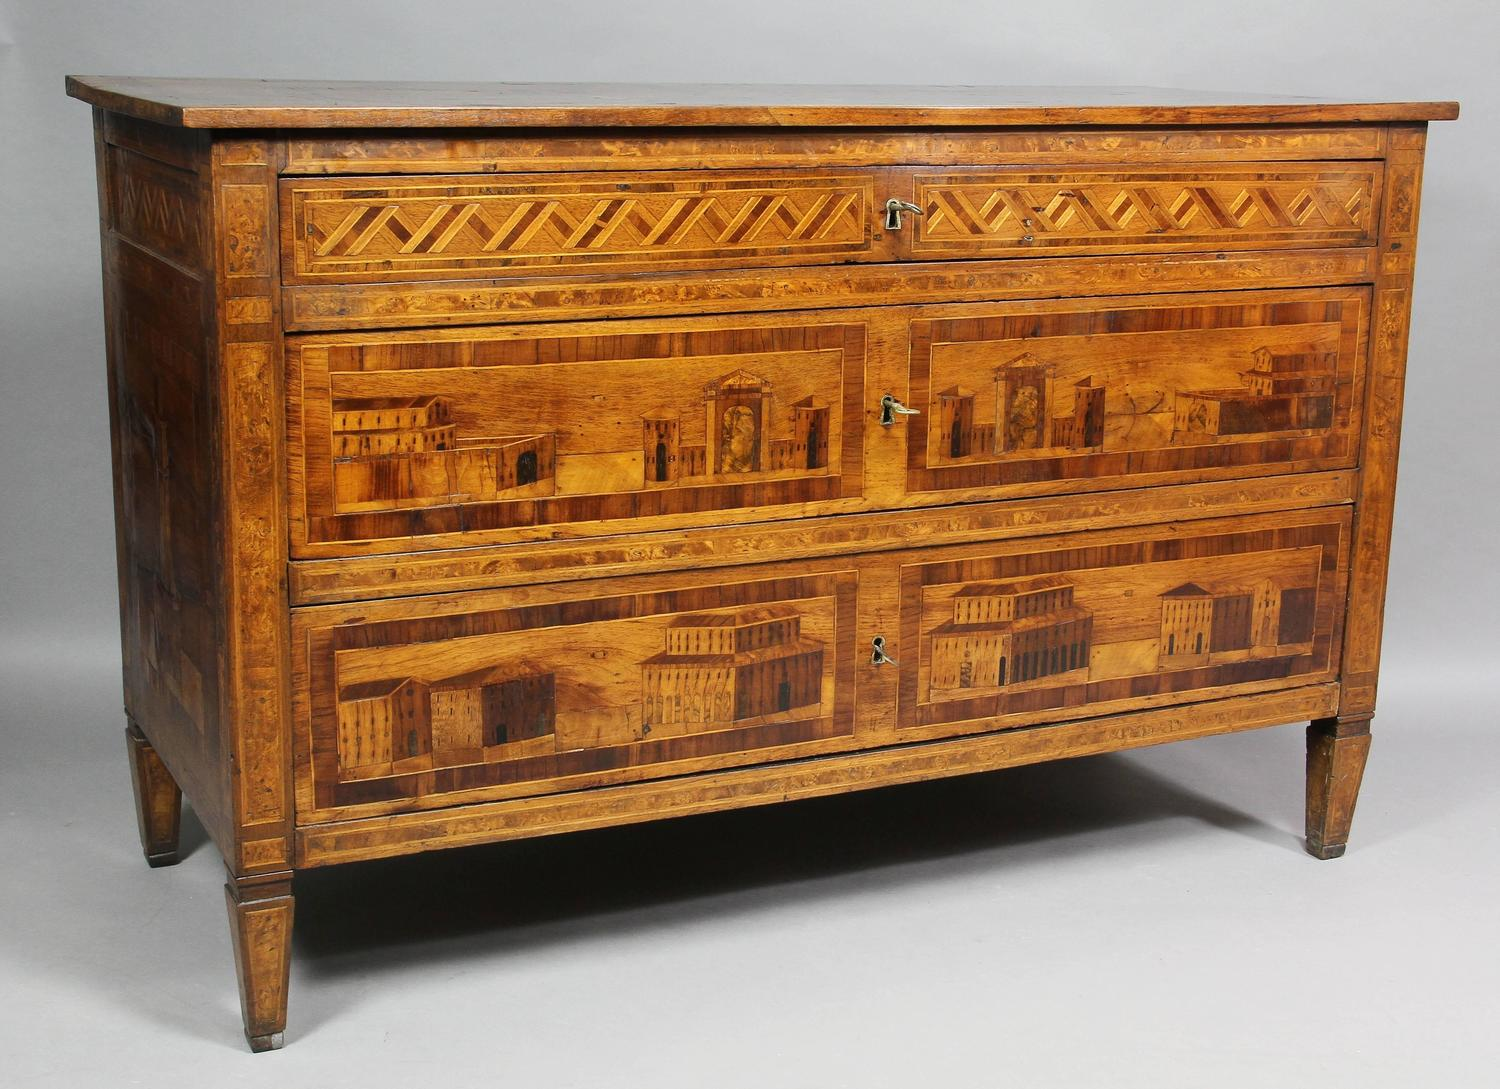 italian neoclassical parquetry and walnut commode for sale at 1stdibs. Black Bedroom Furniture Sets. Home Design Ideas